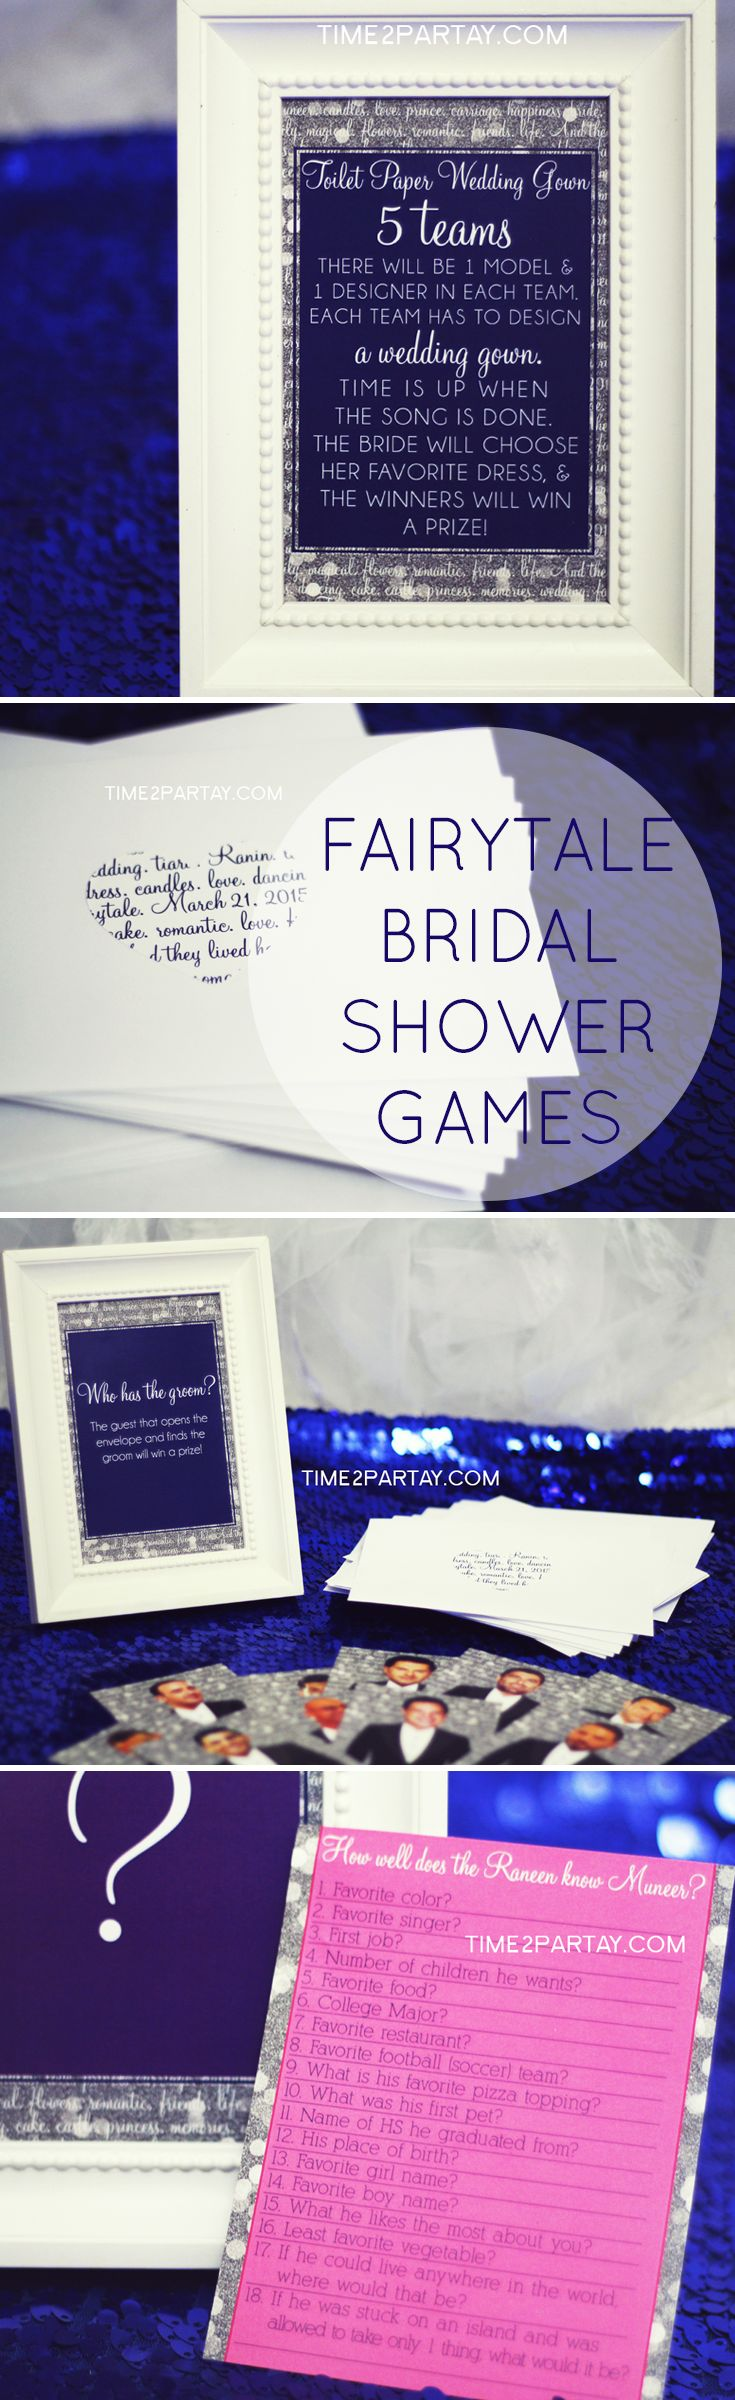 time2partay.blogspot.com Games at a Fairytale Bridal Shower #princess…